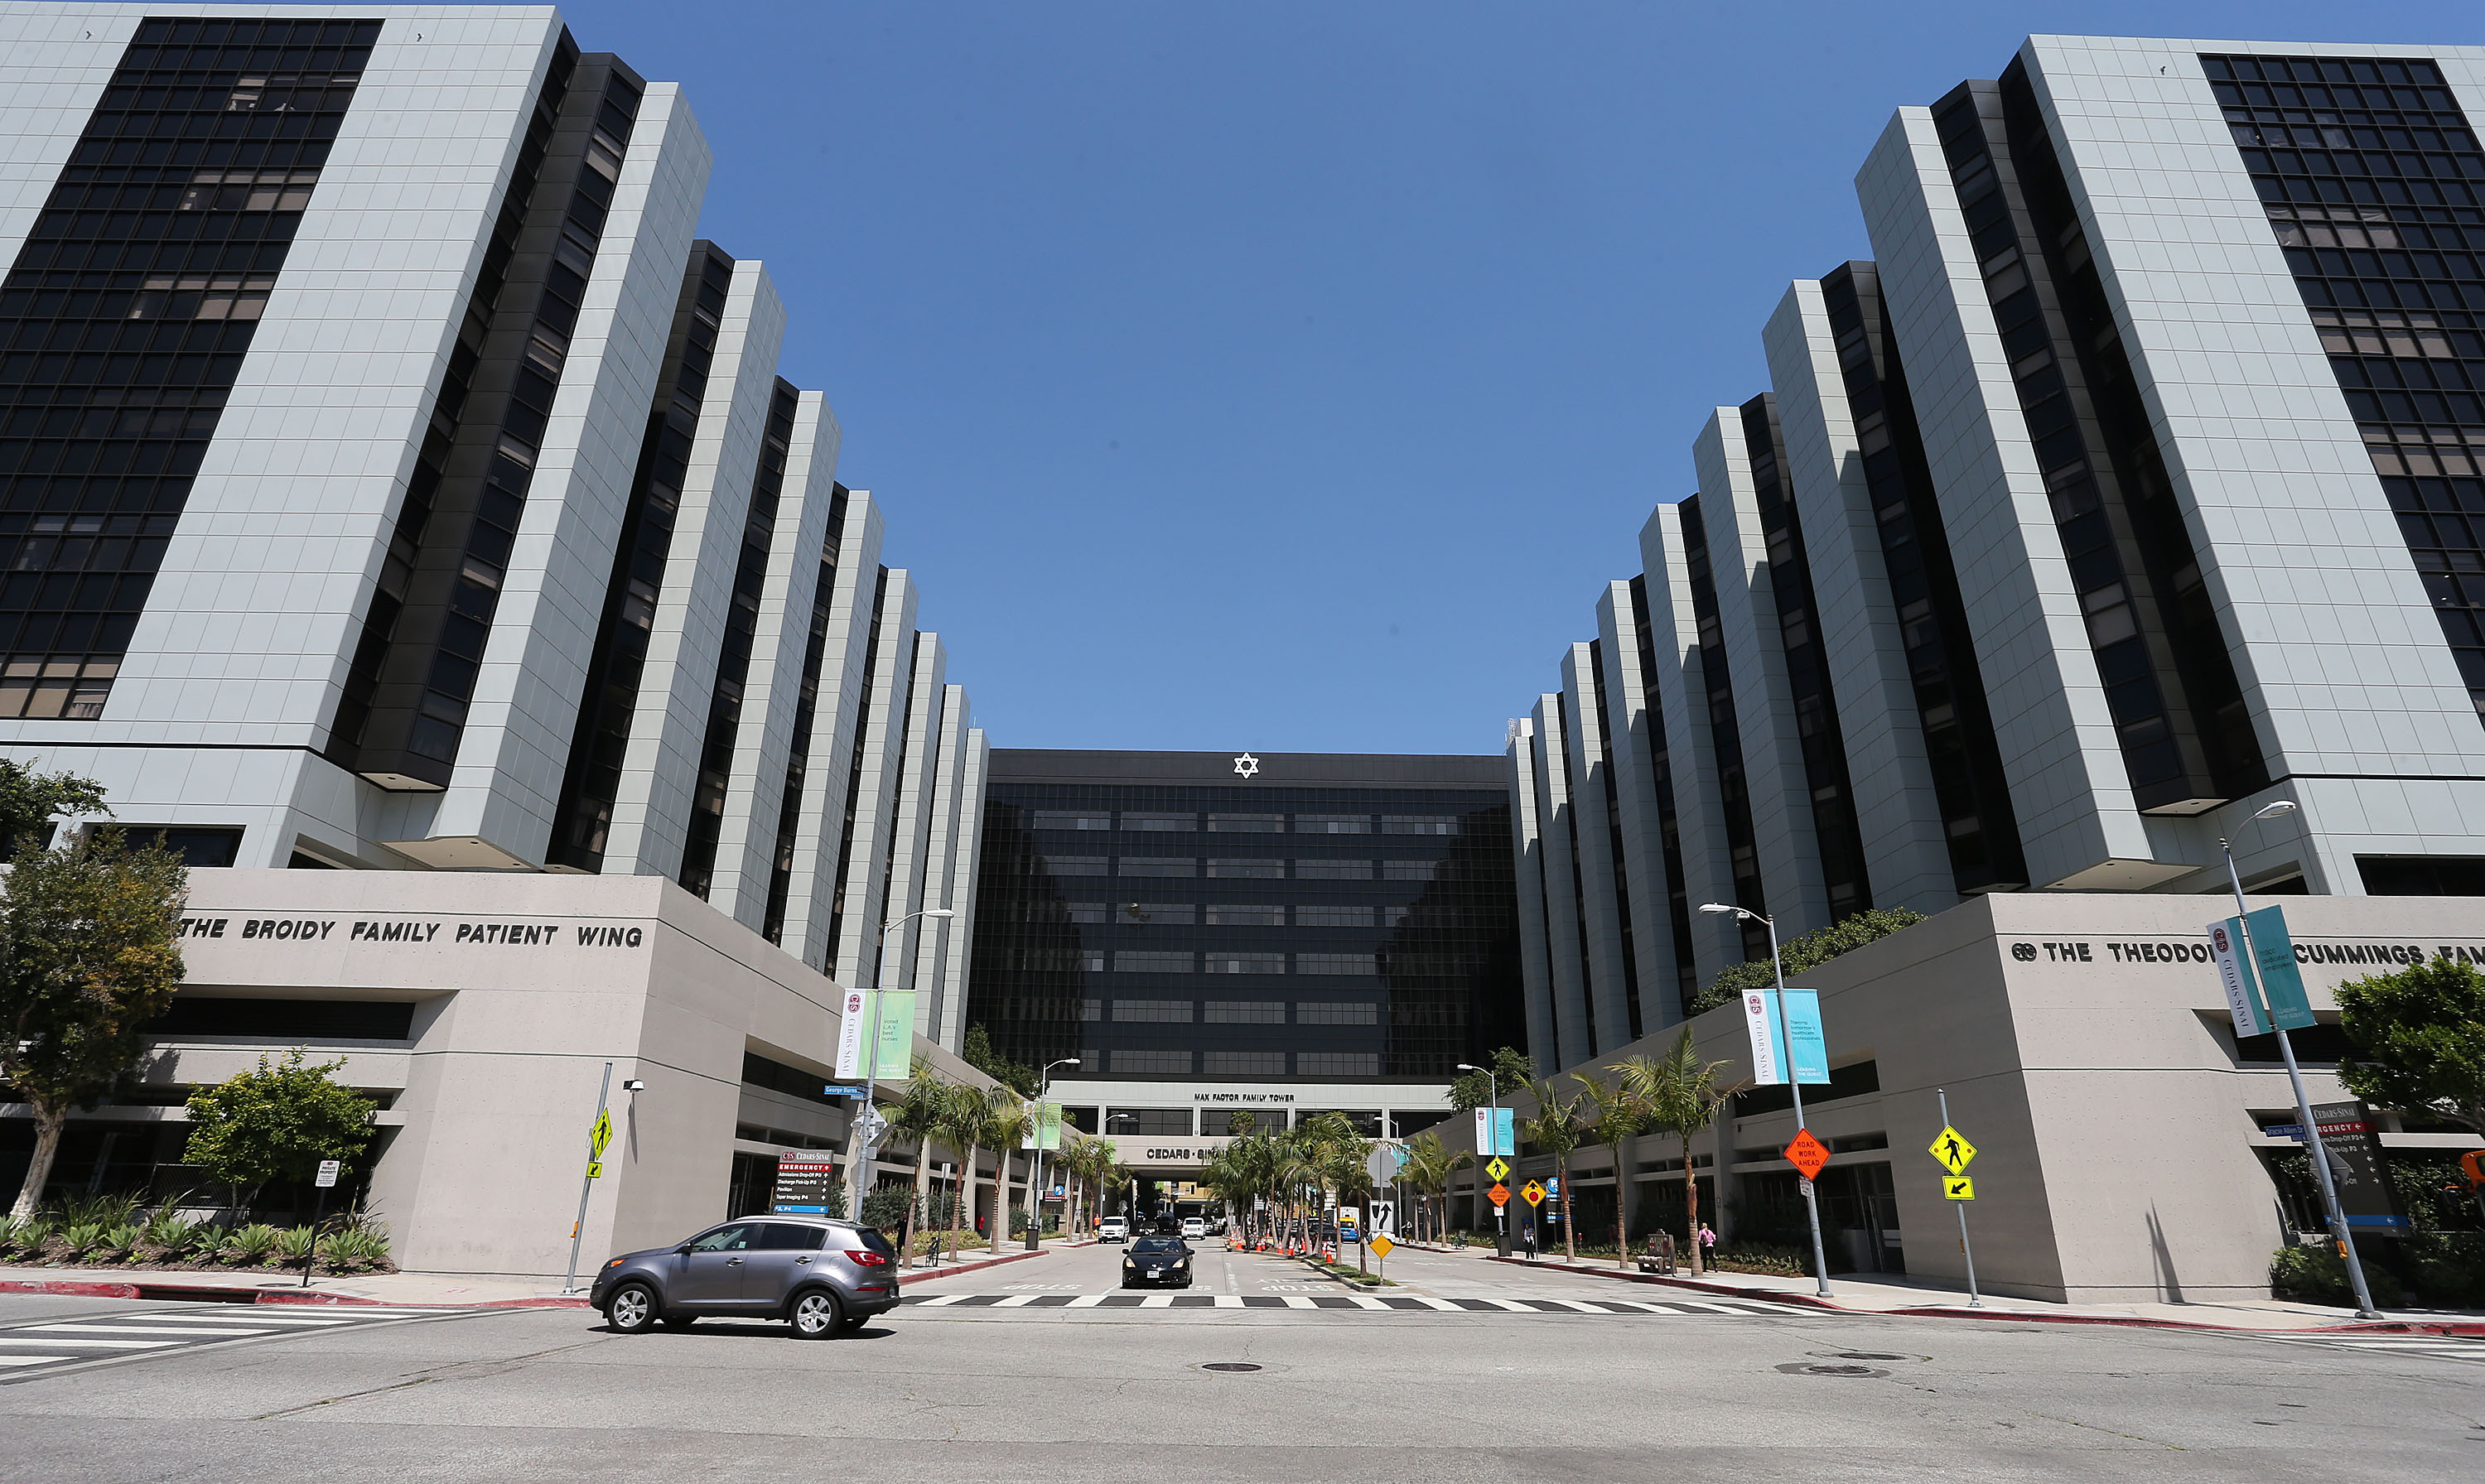 General View of Cedars-Sinai Hospital on June 17, 2013 in Los Angeles, California.